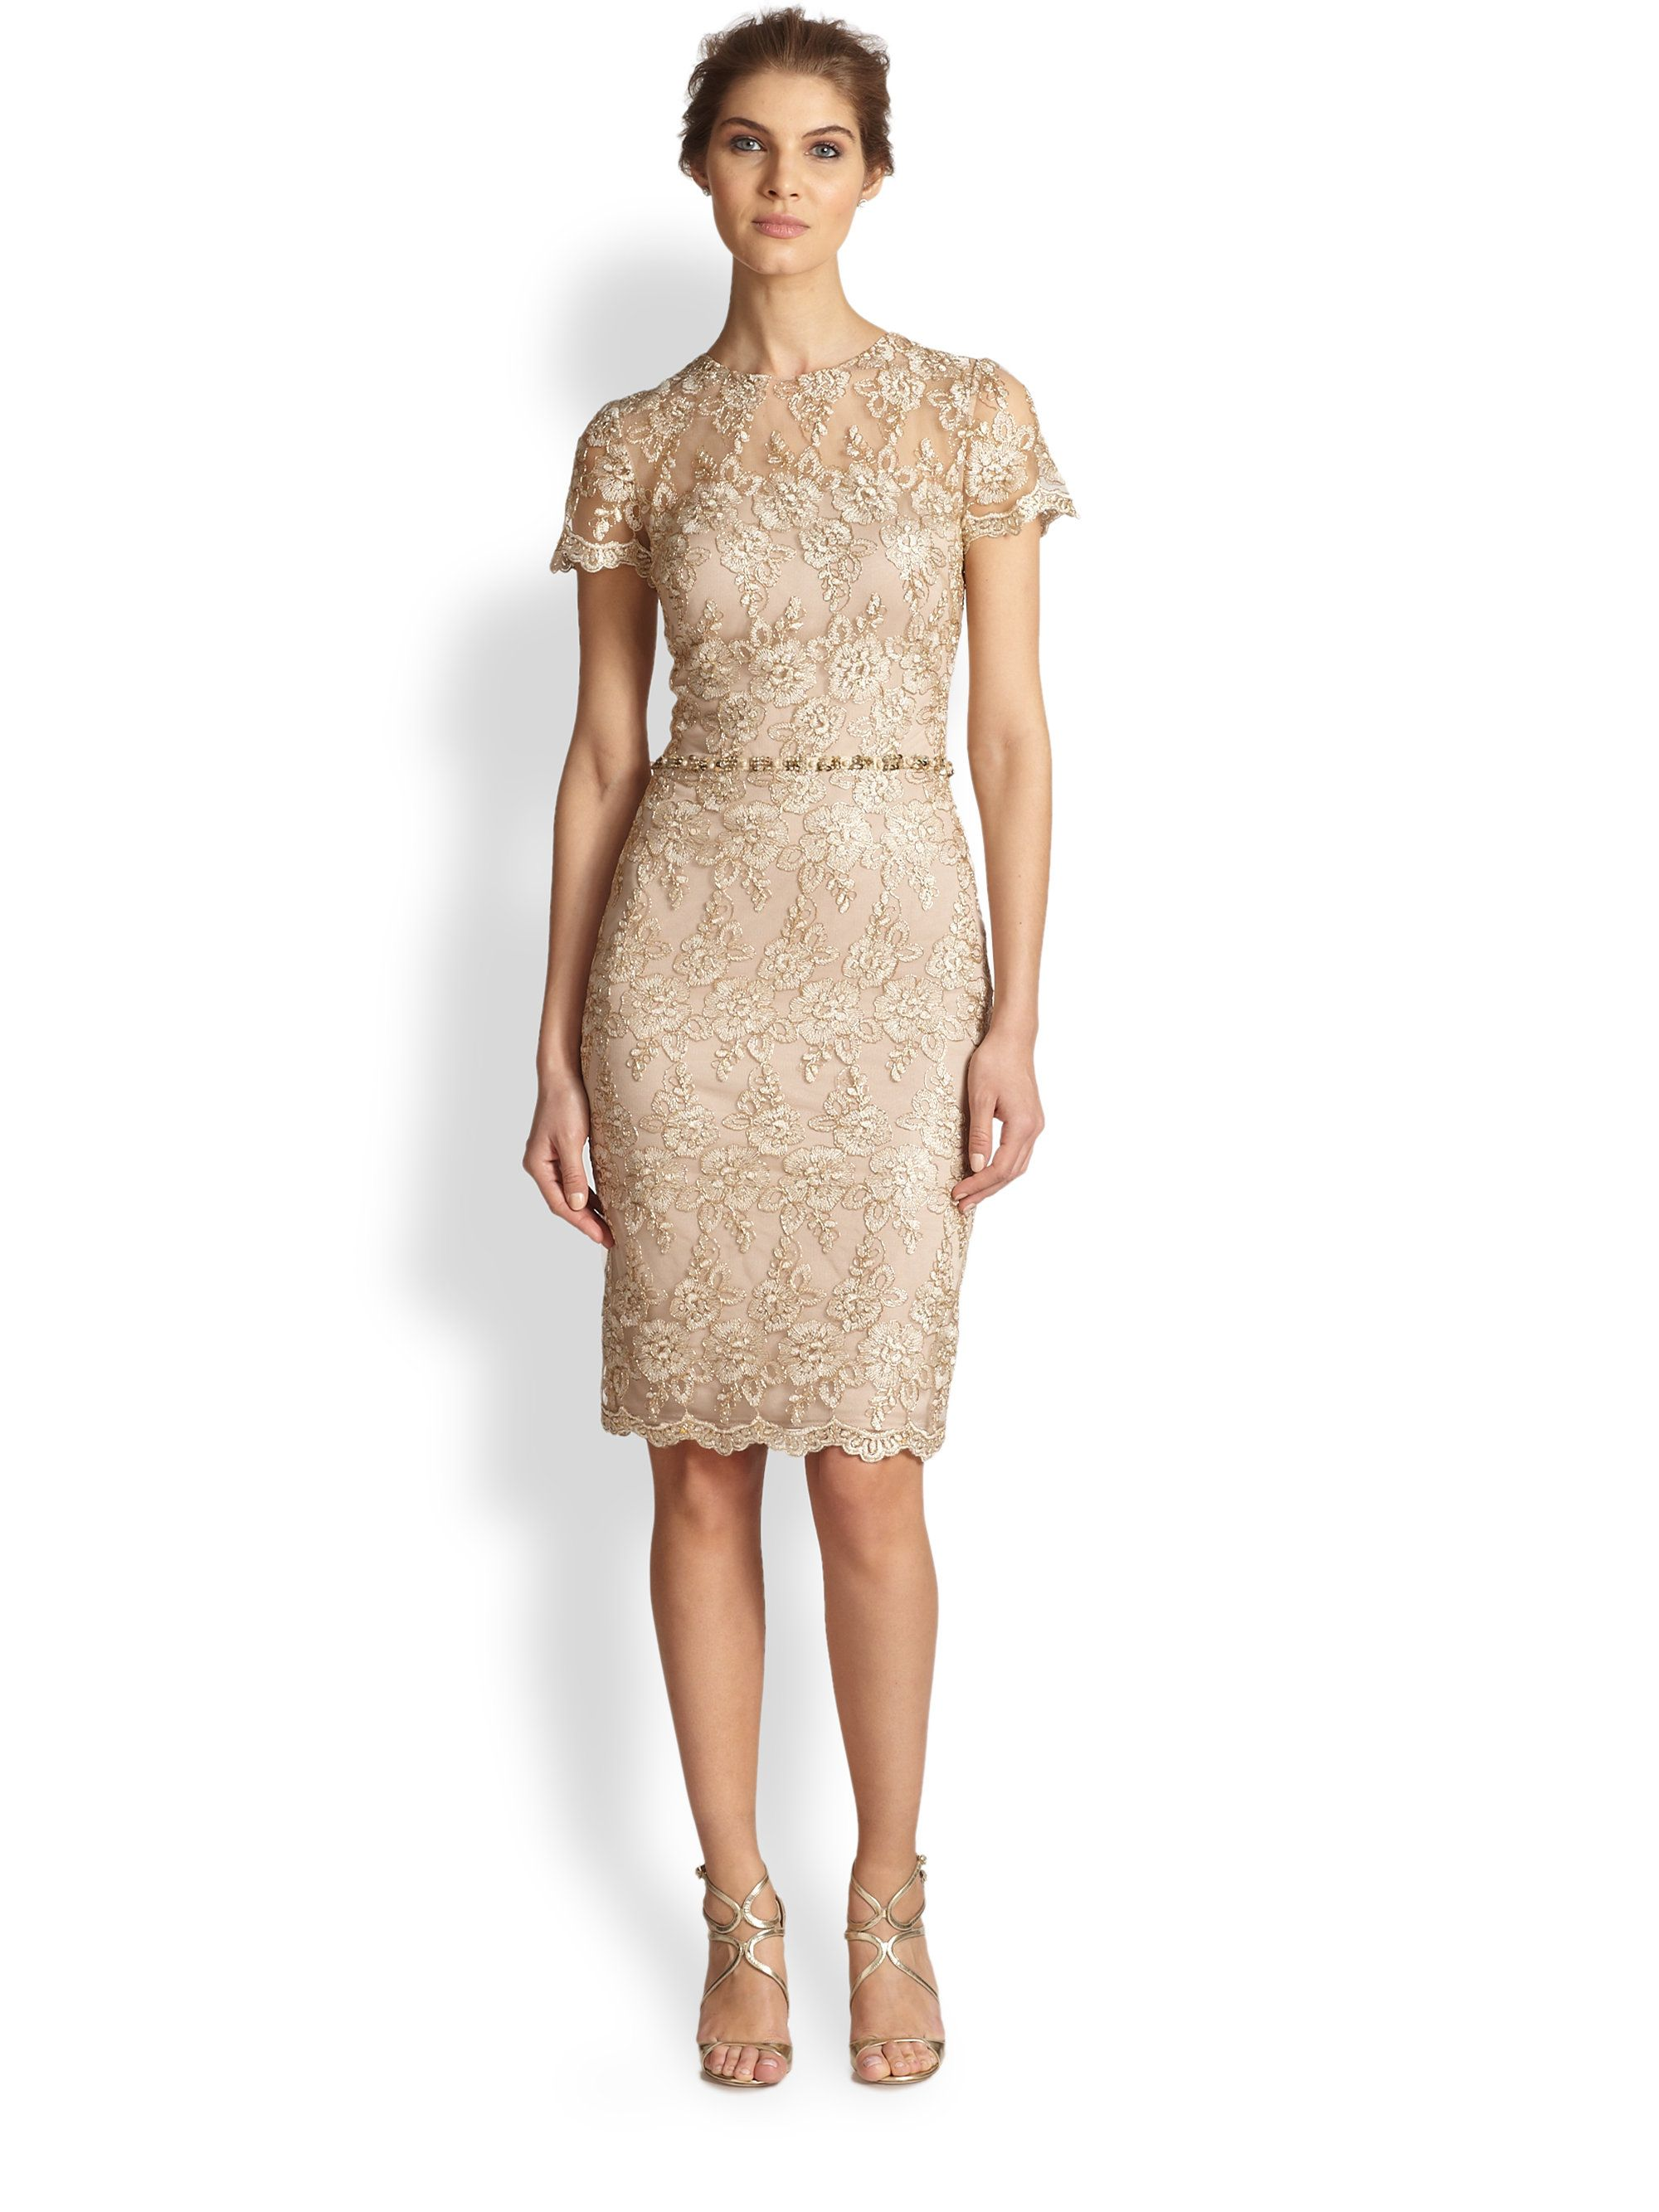 00a7195e David Meister Shortsleeve Lace Dress in Beige (TAUPE) | Lyst | beige ...